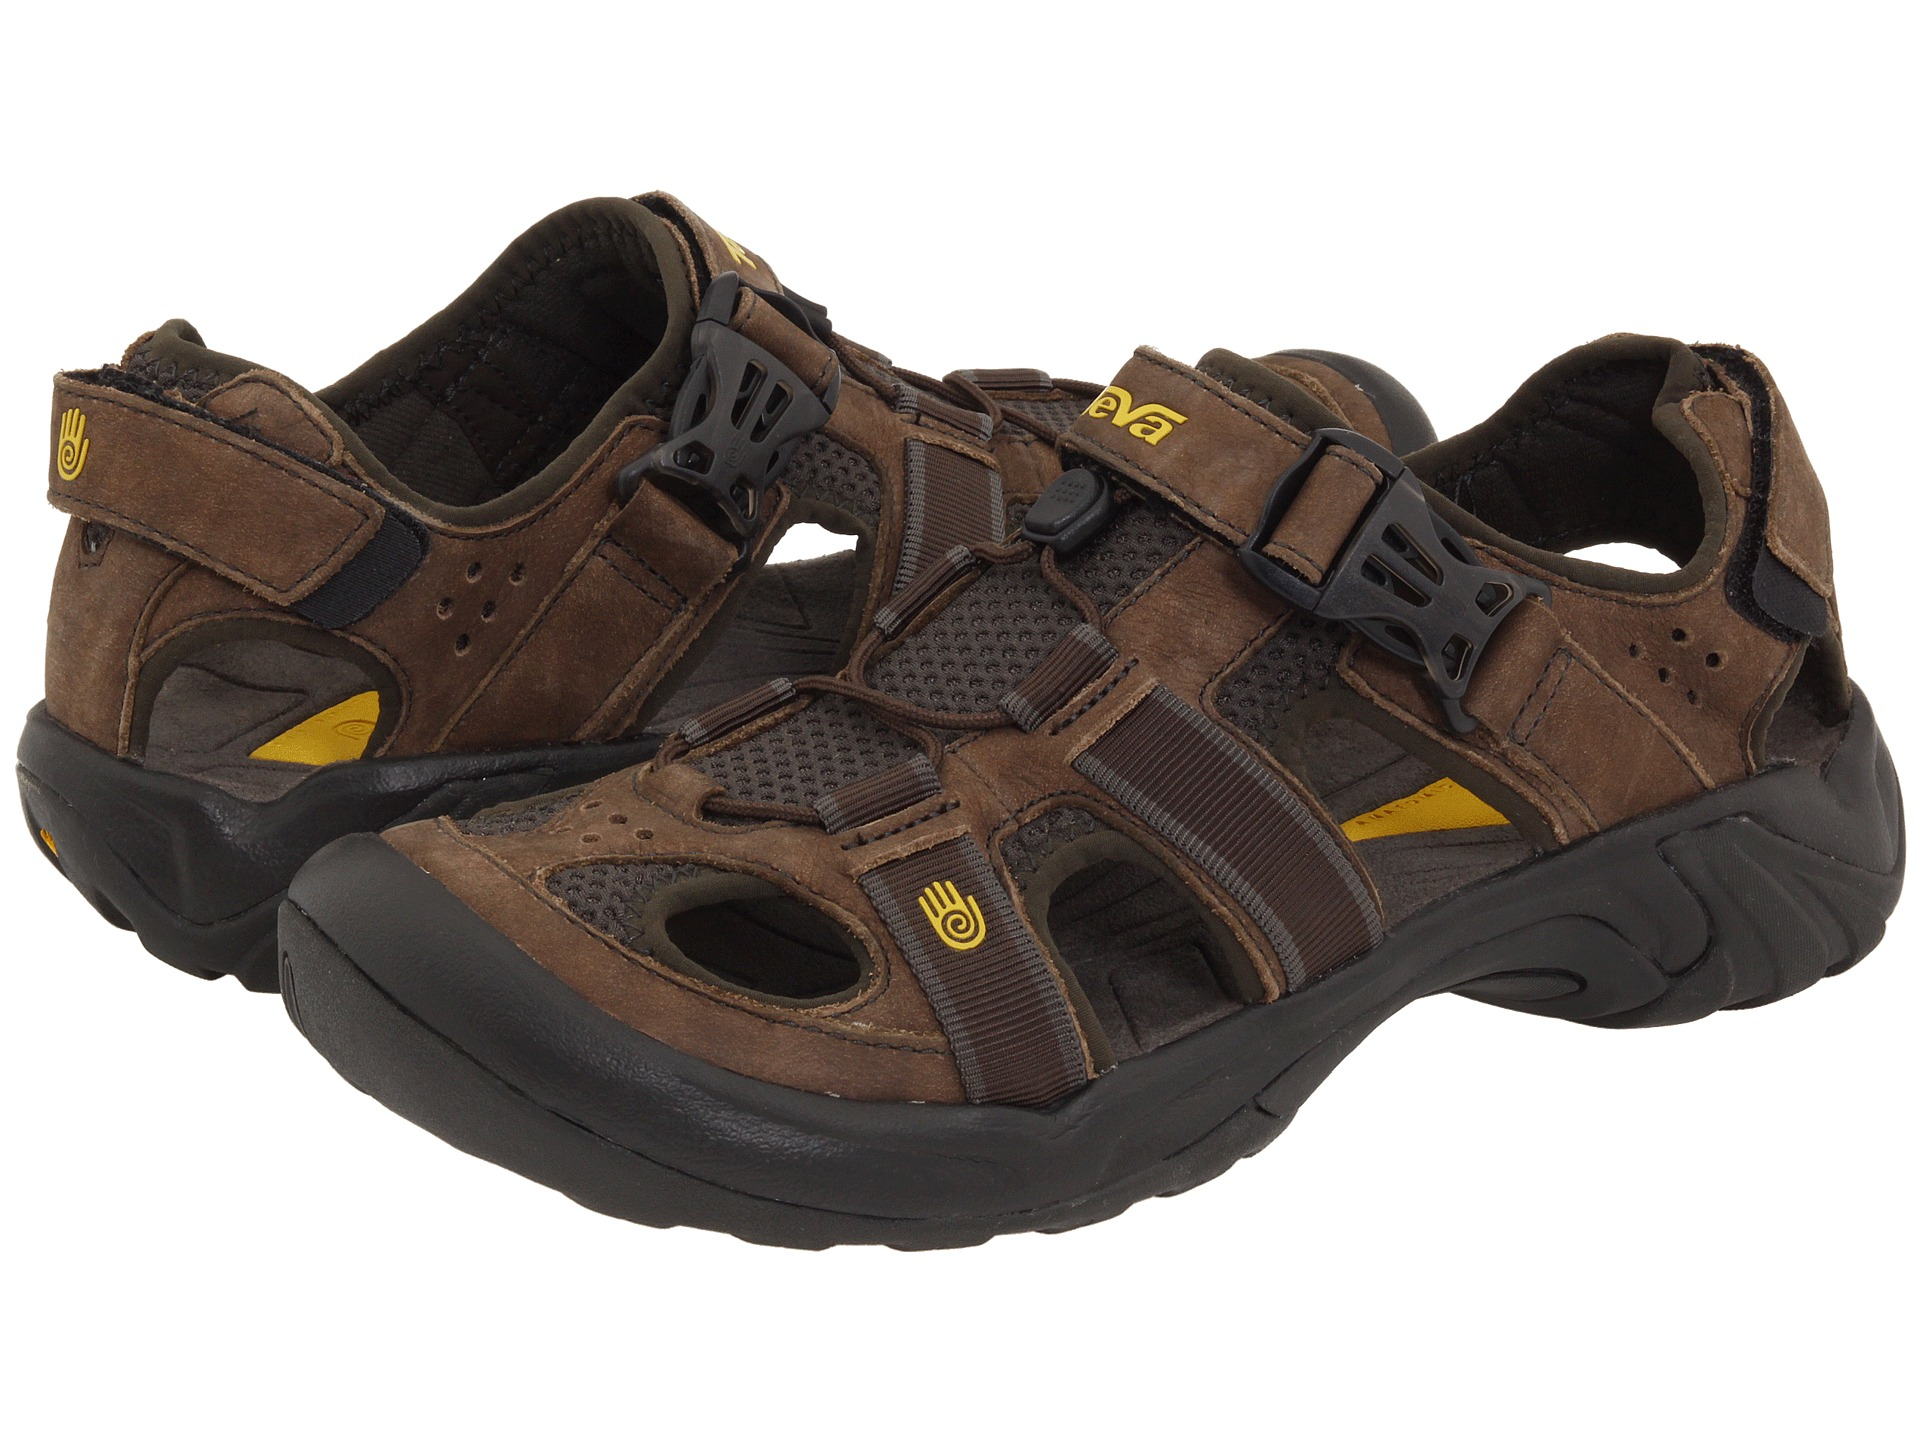 Teva B Shoes For Sale